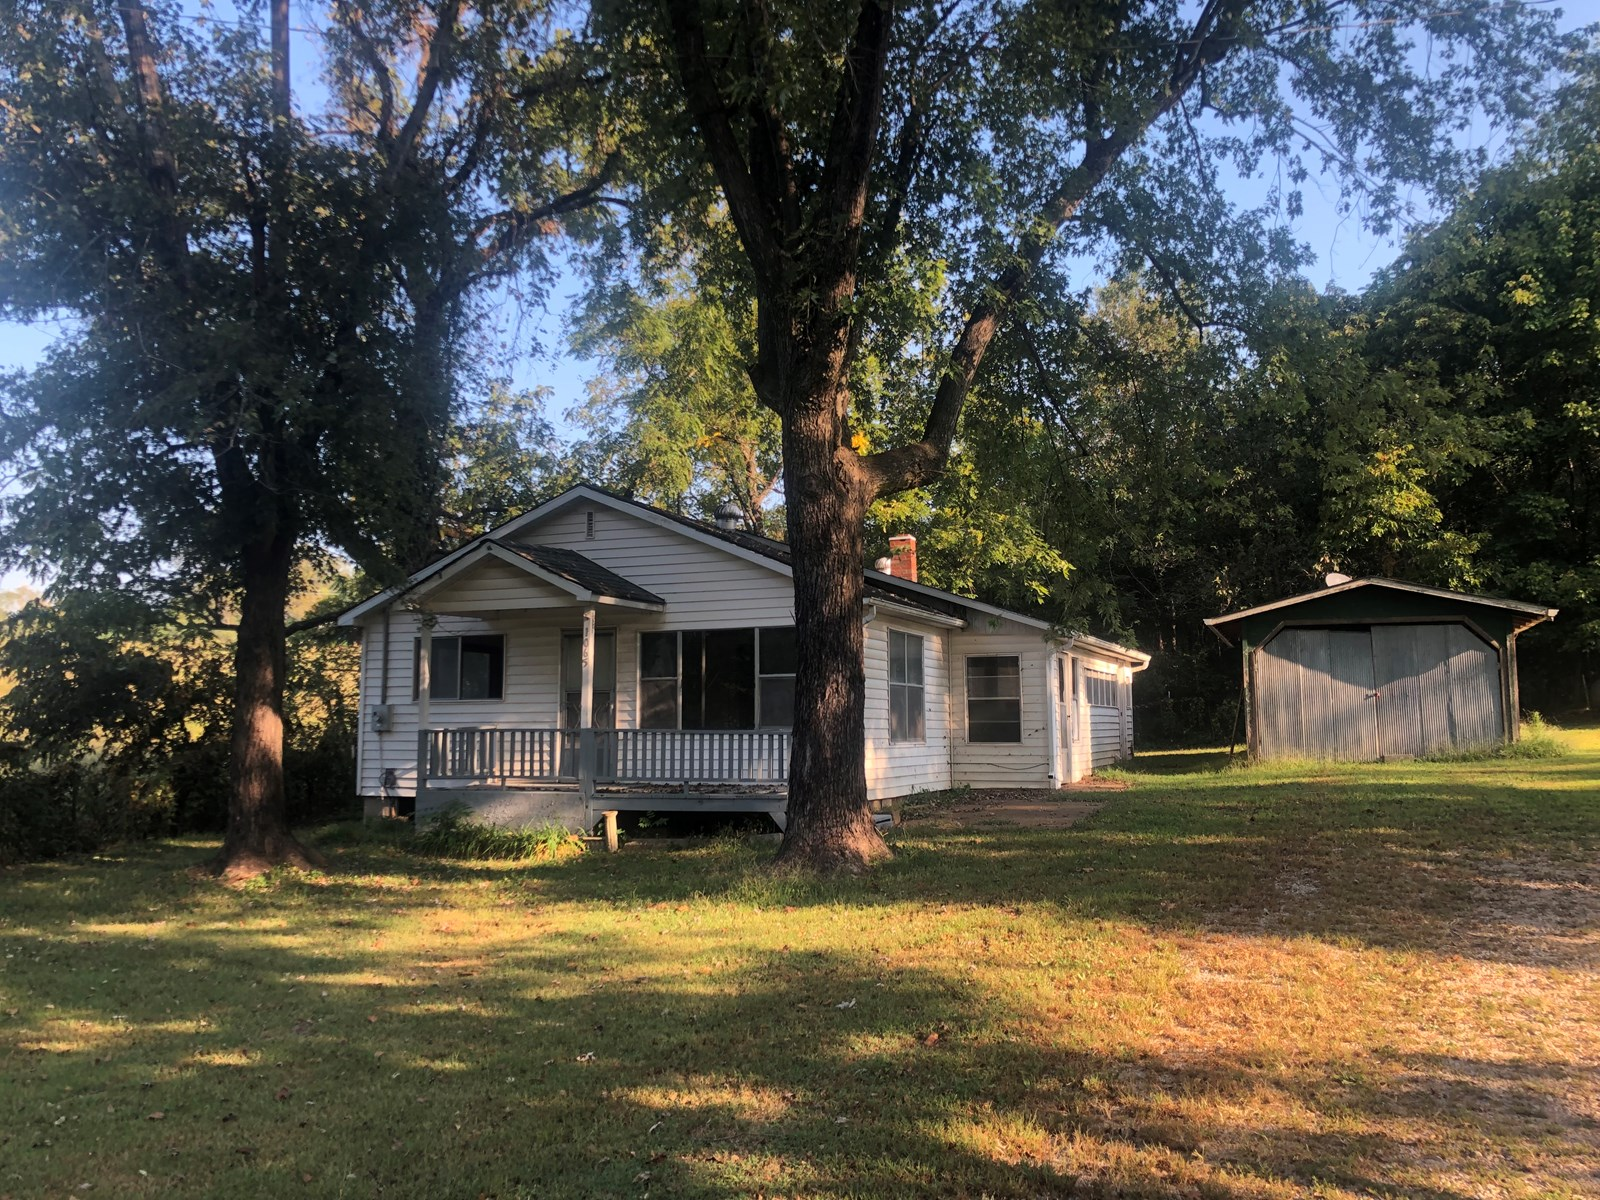 Affordable Home for Sale in Thayer Missouri